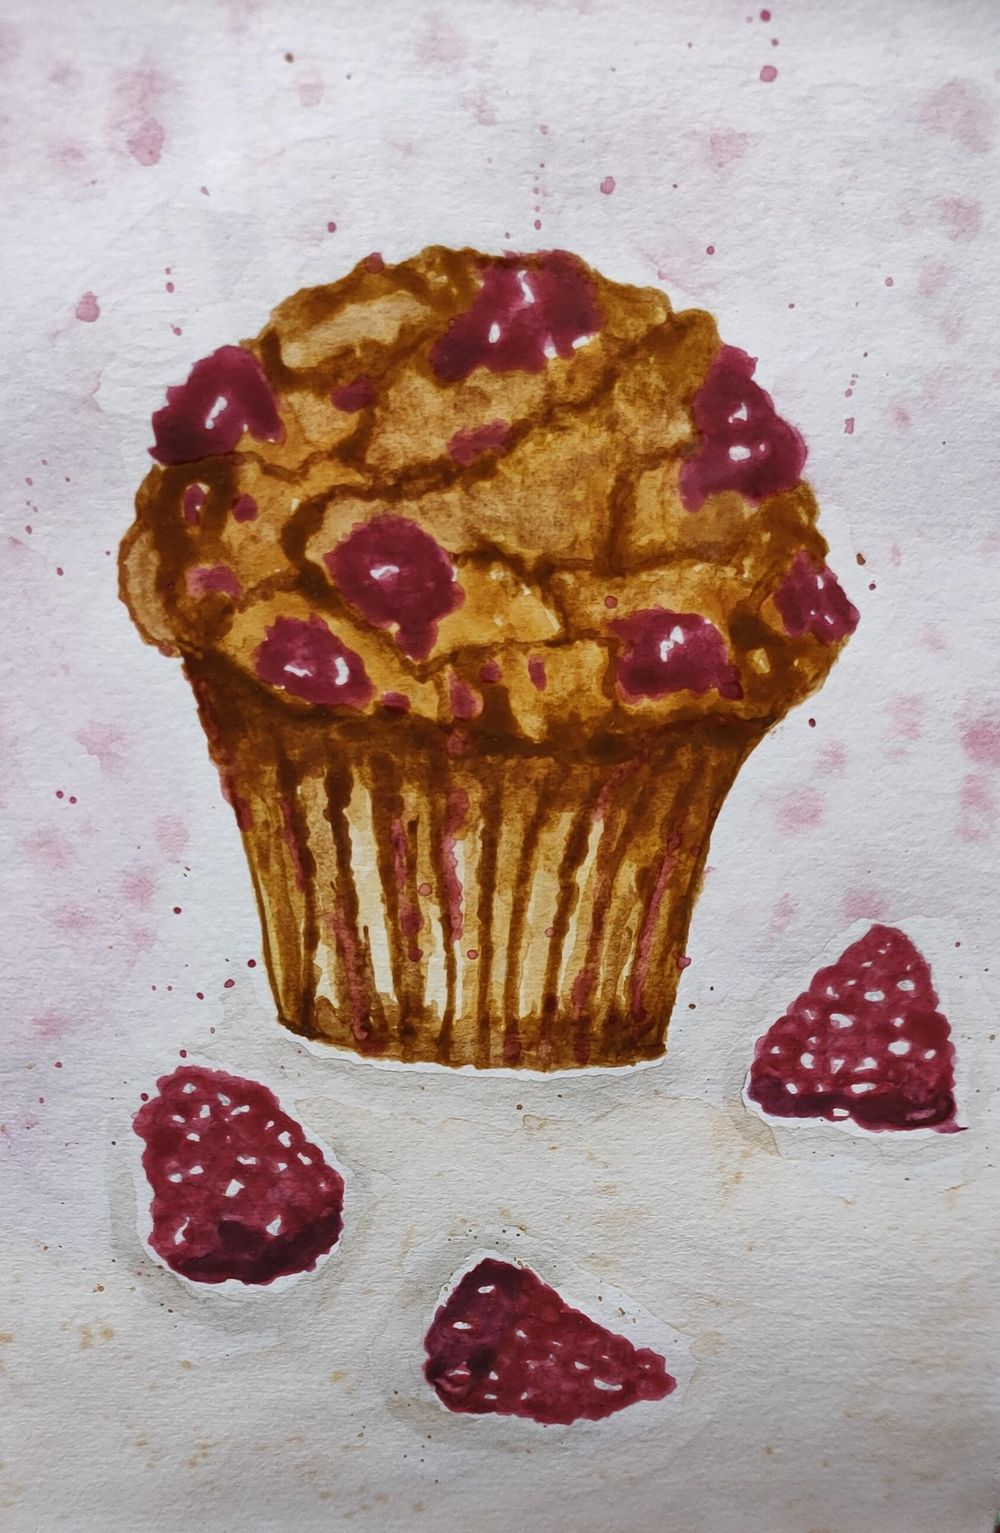 Watercolor Blueberry and Raspberry Muffin - image 1 - student project